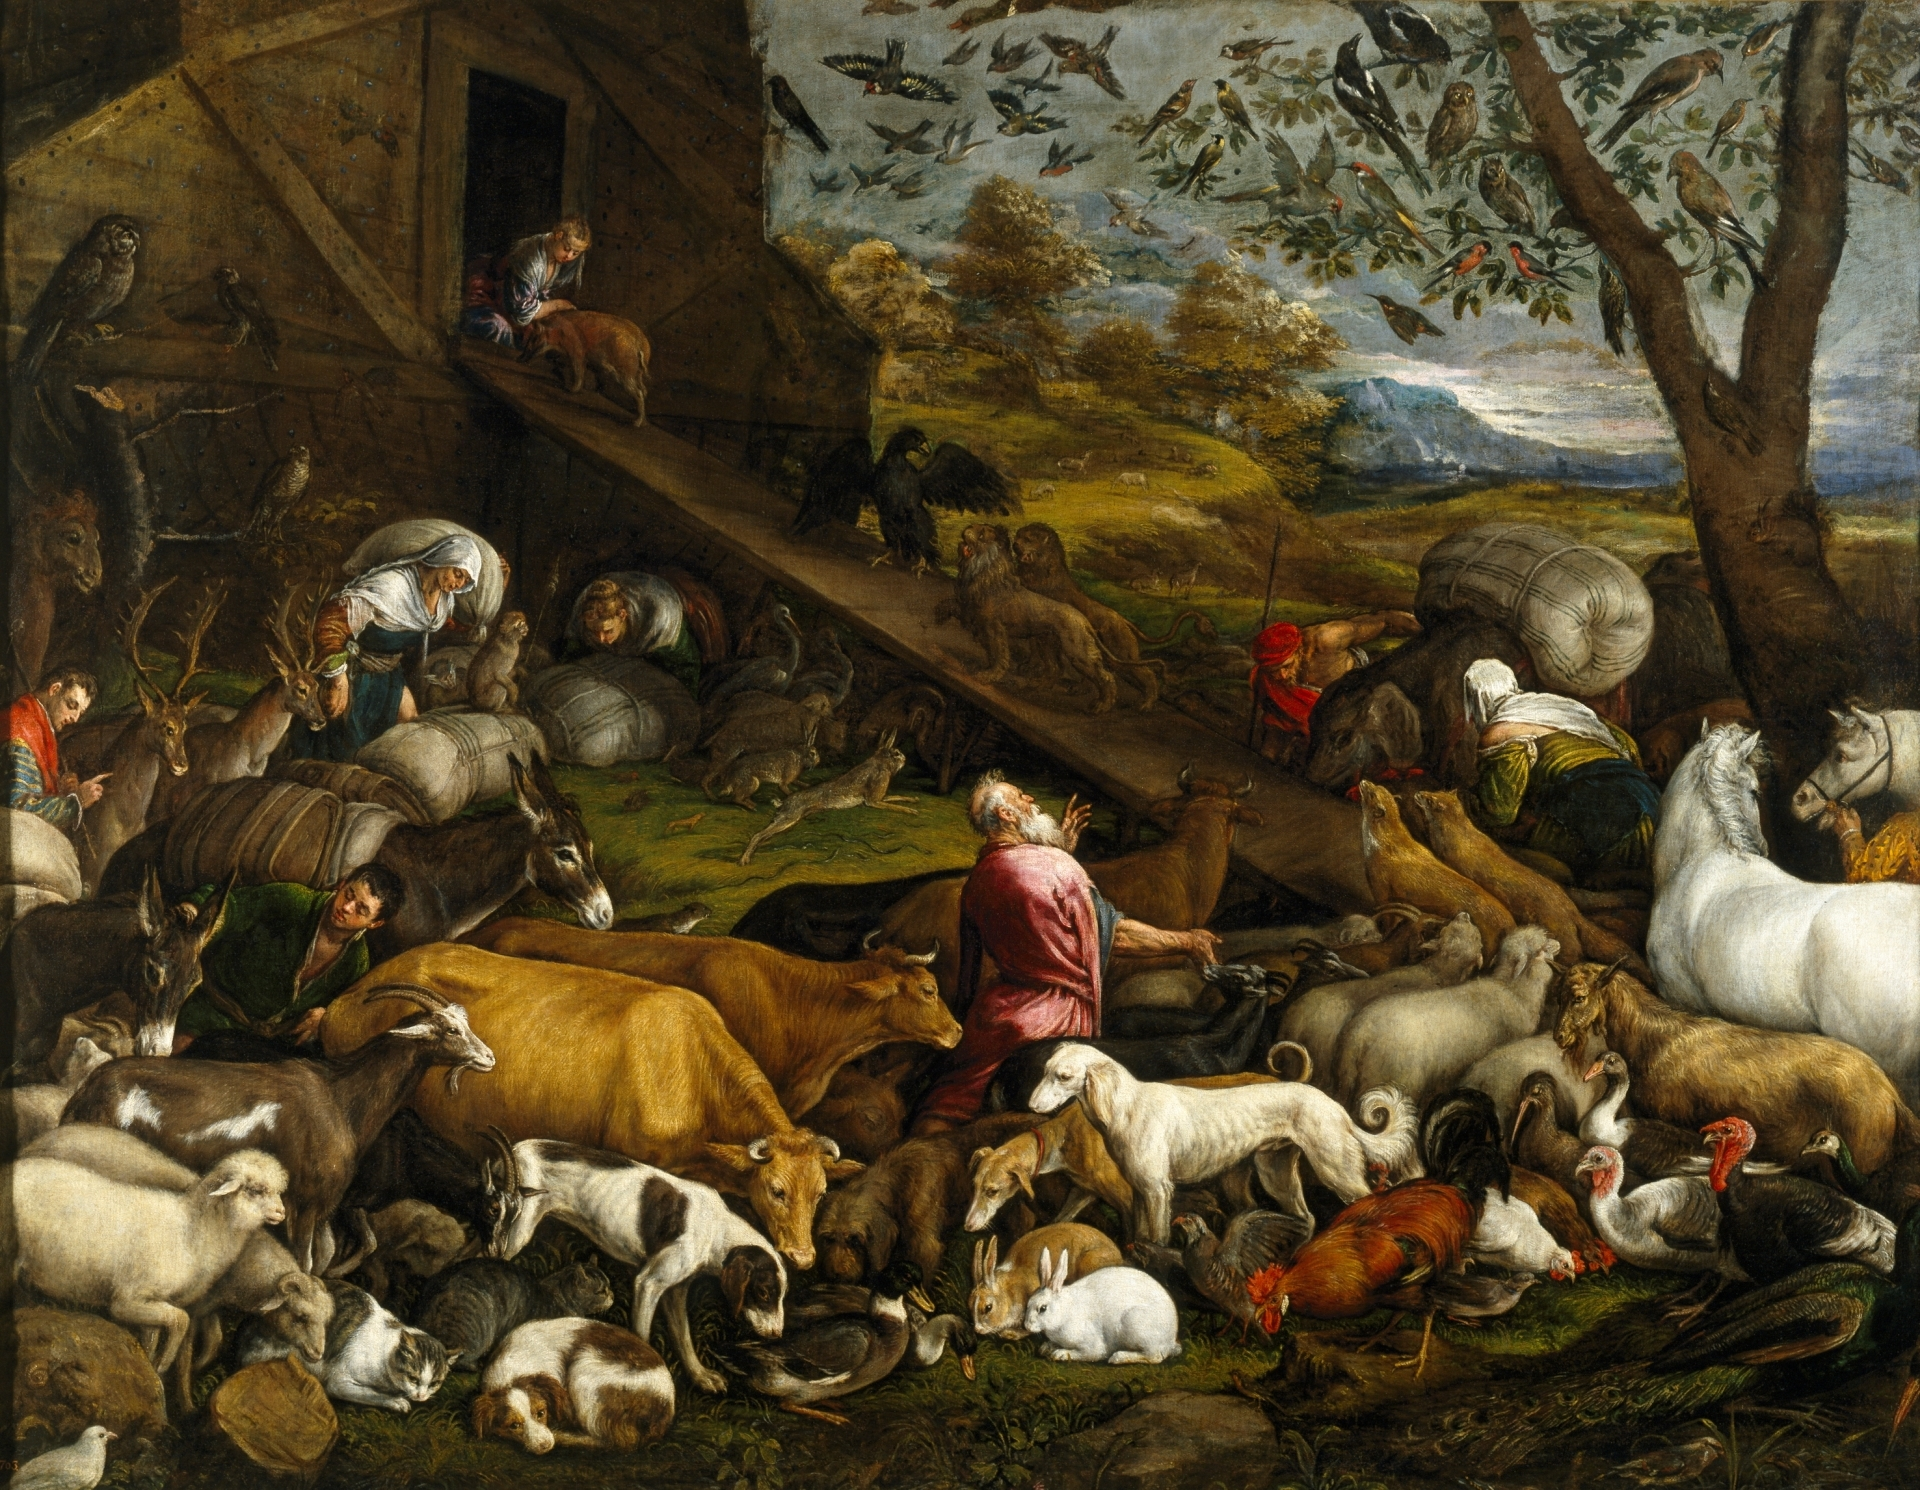 FileThe Animals Entering Noahs Ark 1570s Jacopo Bassano